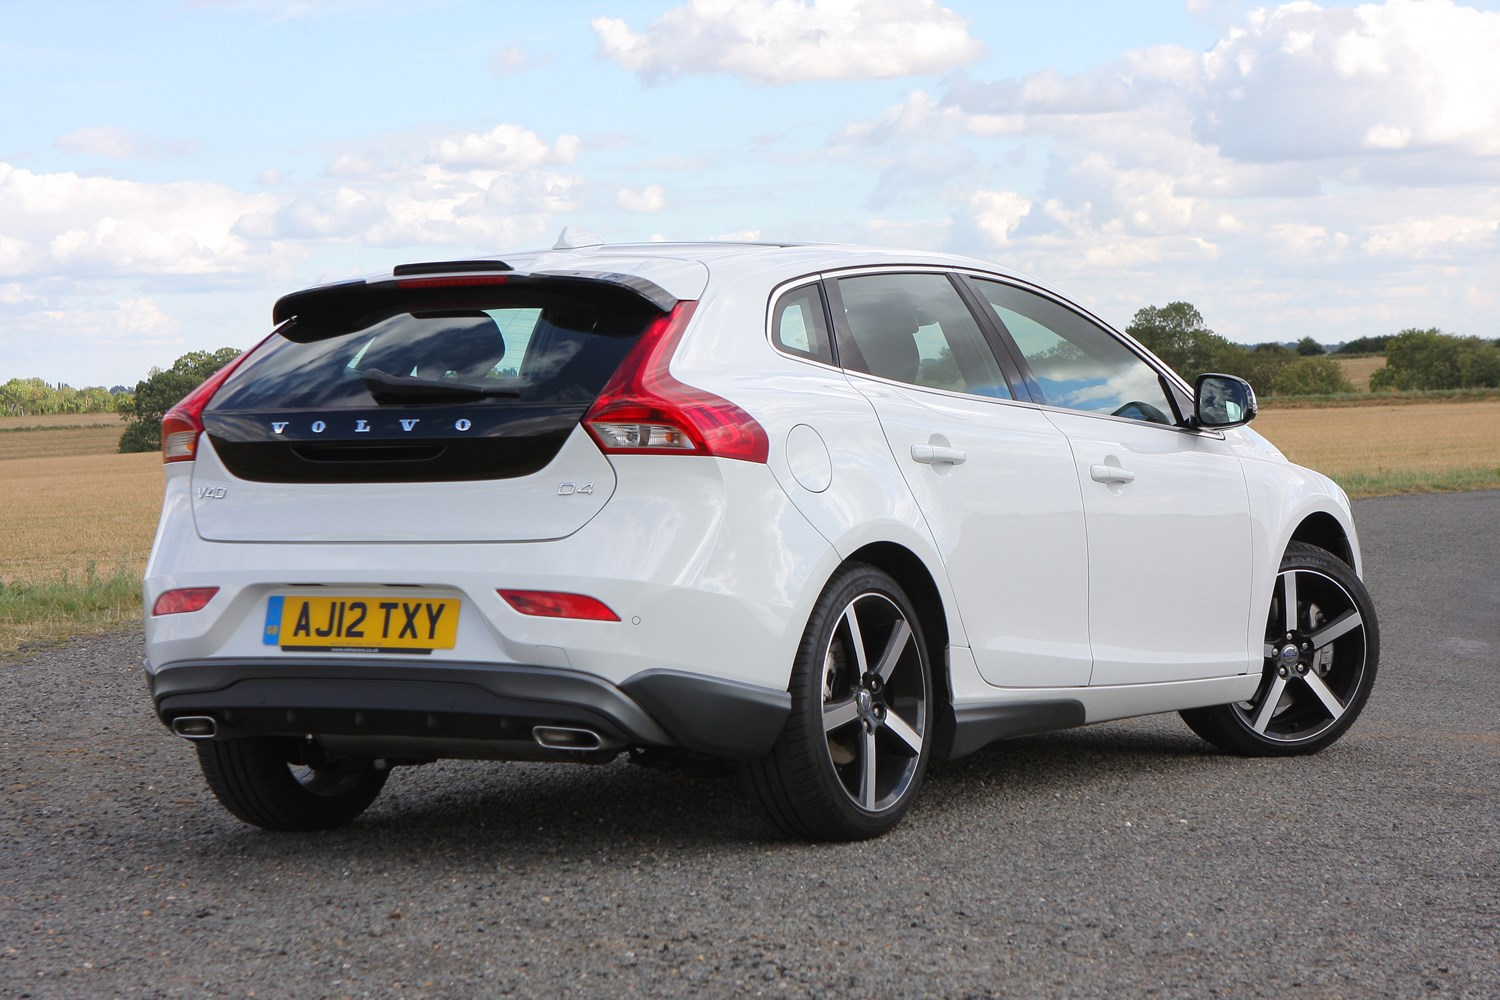 Volvo V >> Volvo V40 Hatchback (2012 - ) Photos | Parkers